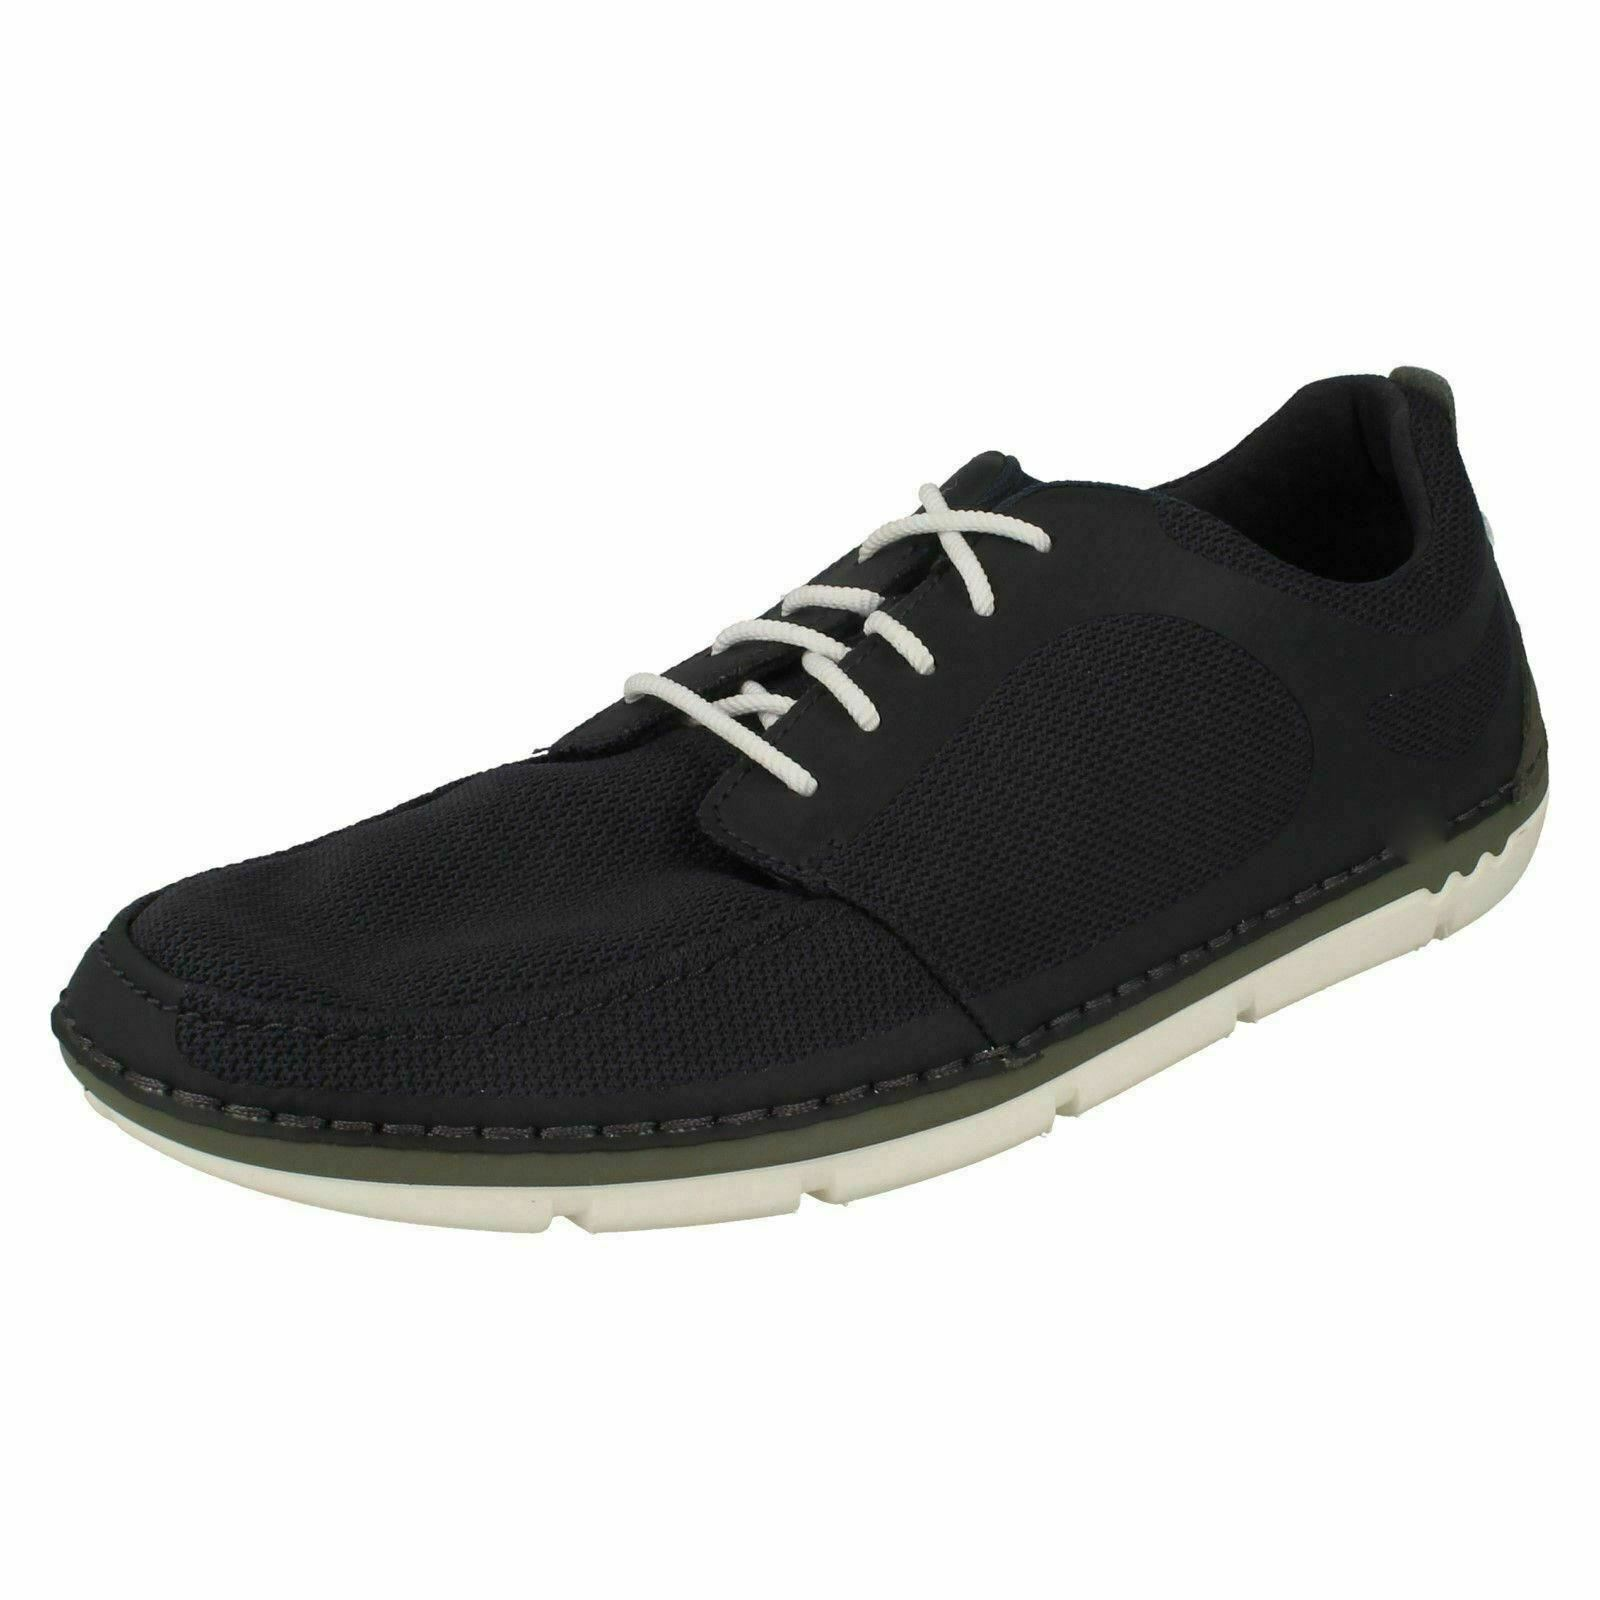 abc9c7ca8e STEP MARO SOL CASUAL LACE UP TRAINER CLARKS nsetll6595-Athletic Shoes